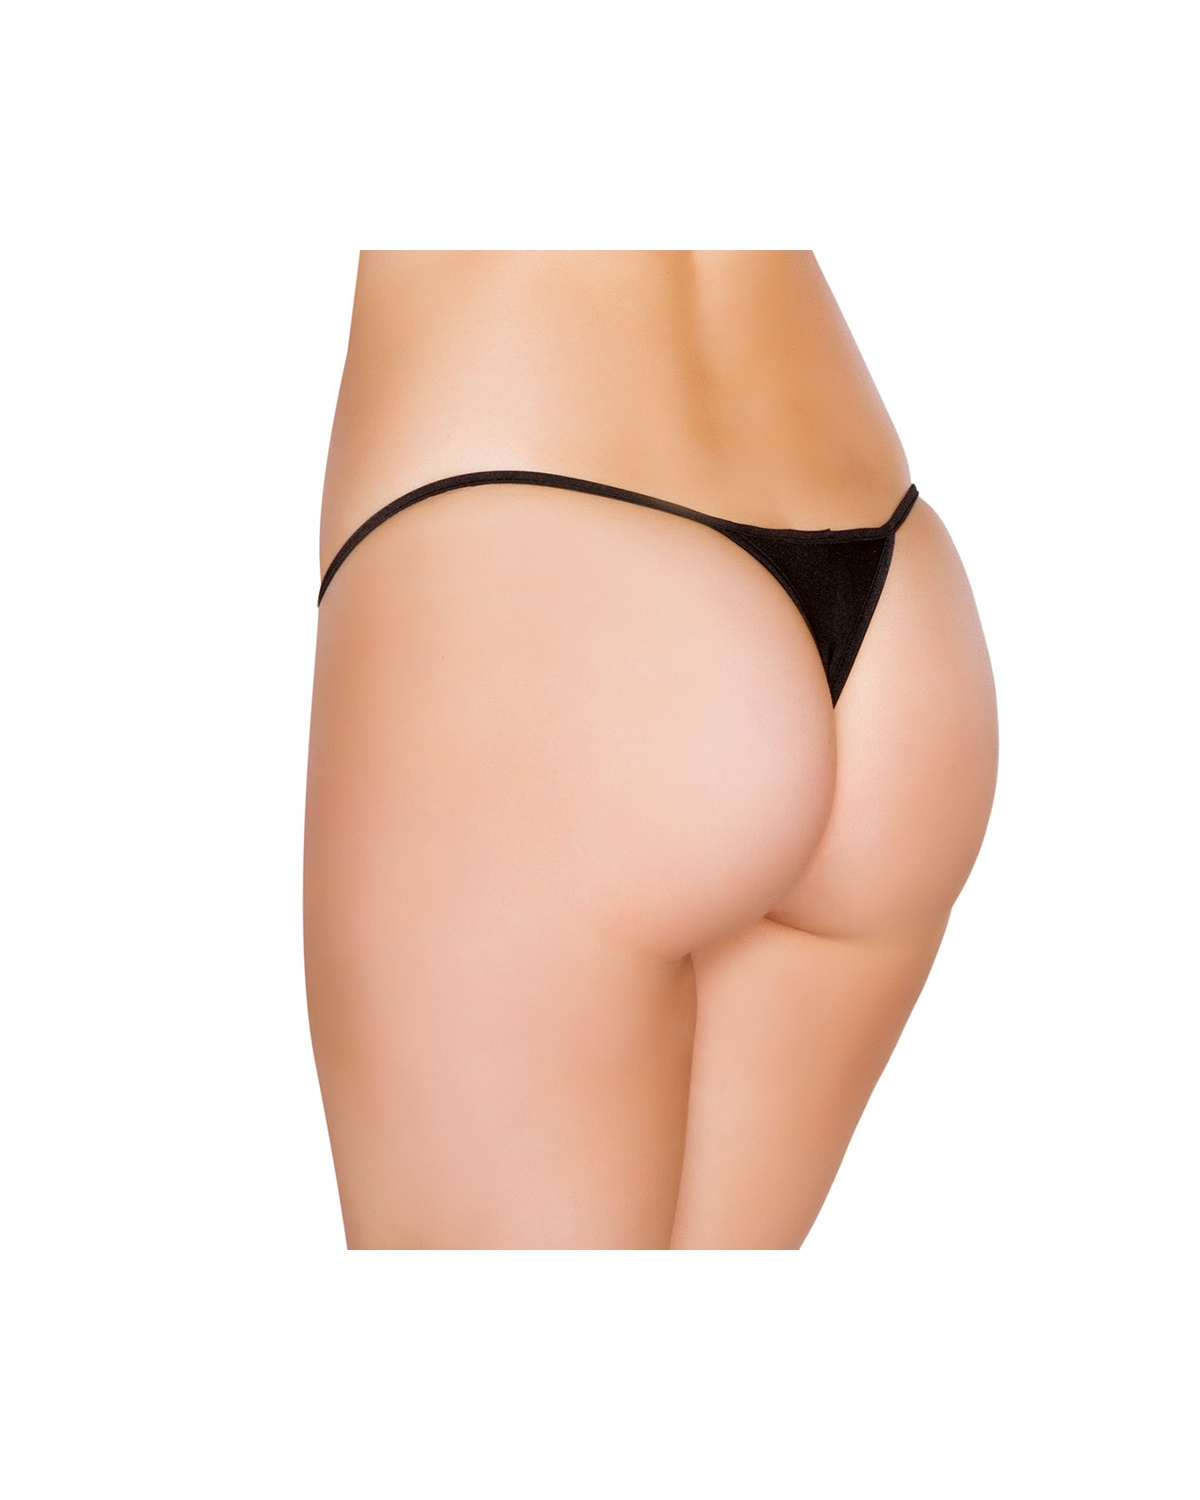 'RomaCostume Micro Low Cut Thong'